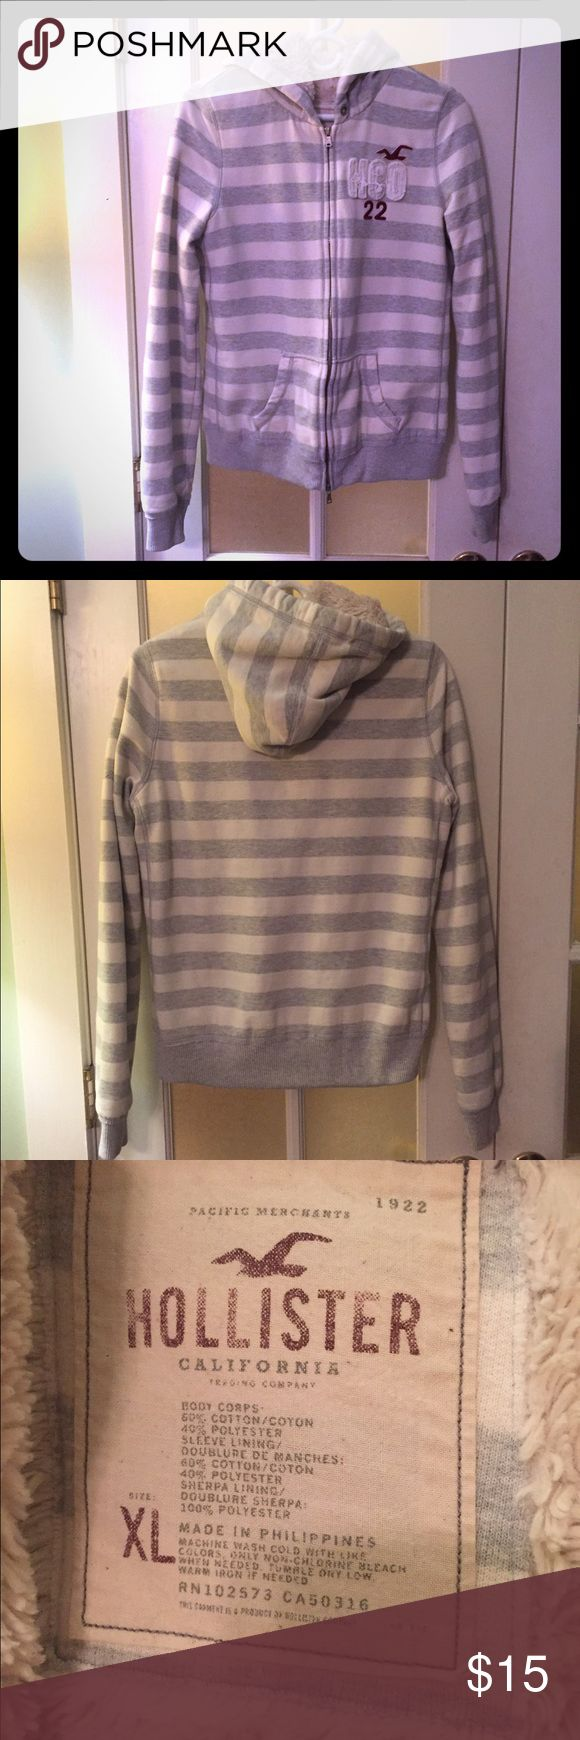 Hollister fur lined striped zip up hoodie Extremely cozy and warm zip up!! Tag reads XL fits more like a medium, Only flaw is the missing hood string slight piling... Hollister Tops Sweatshirts & Hoodies